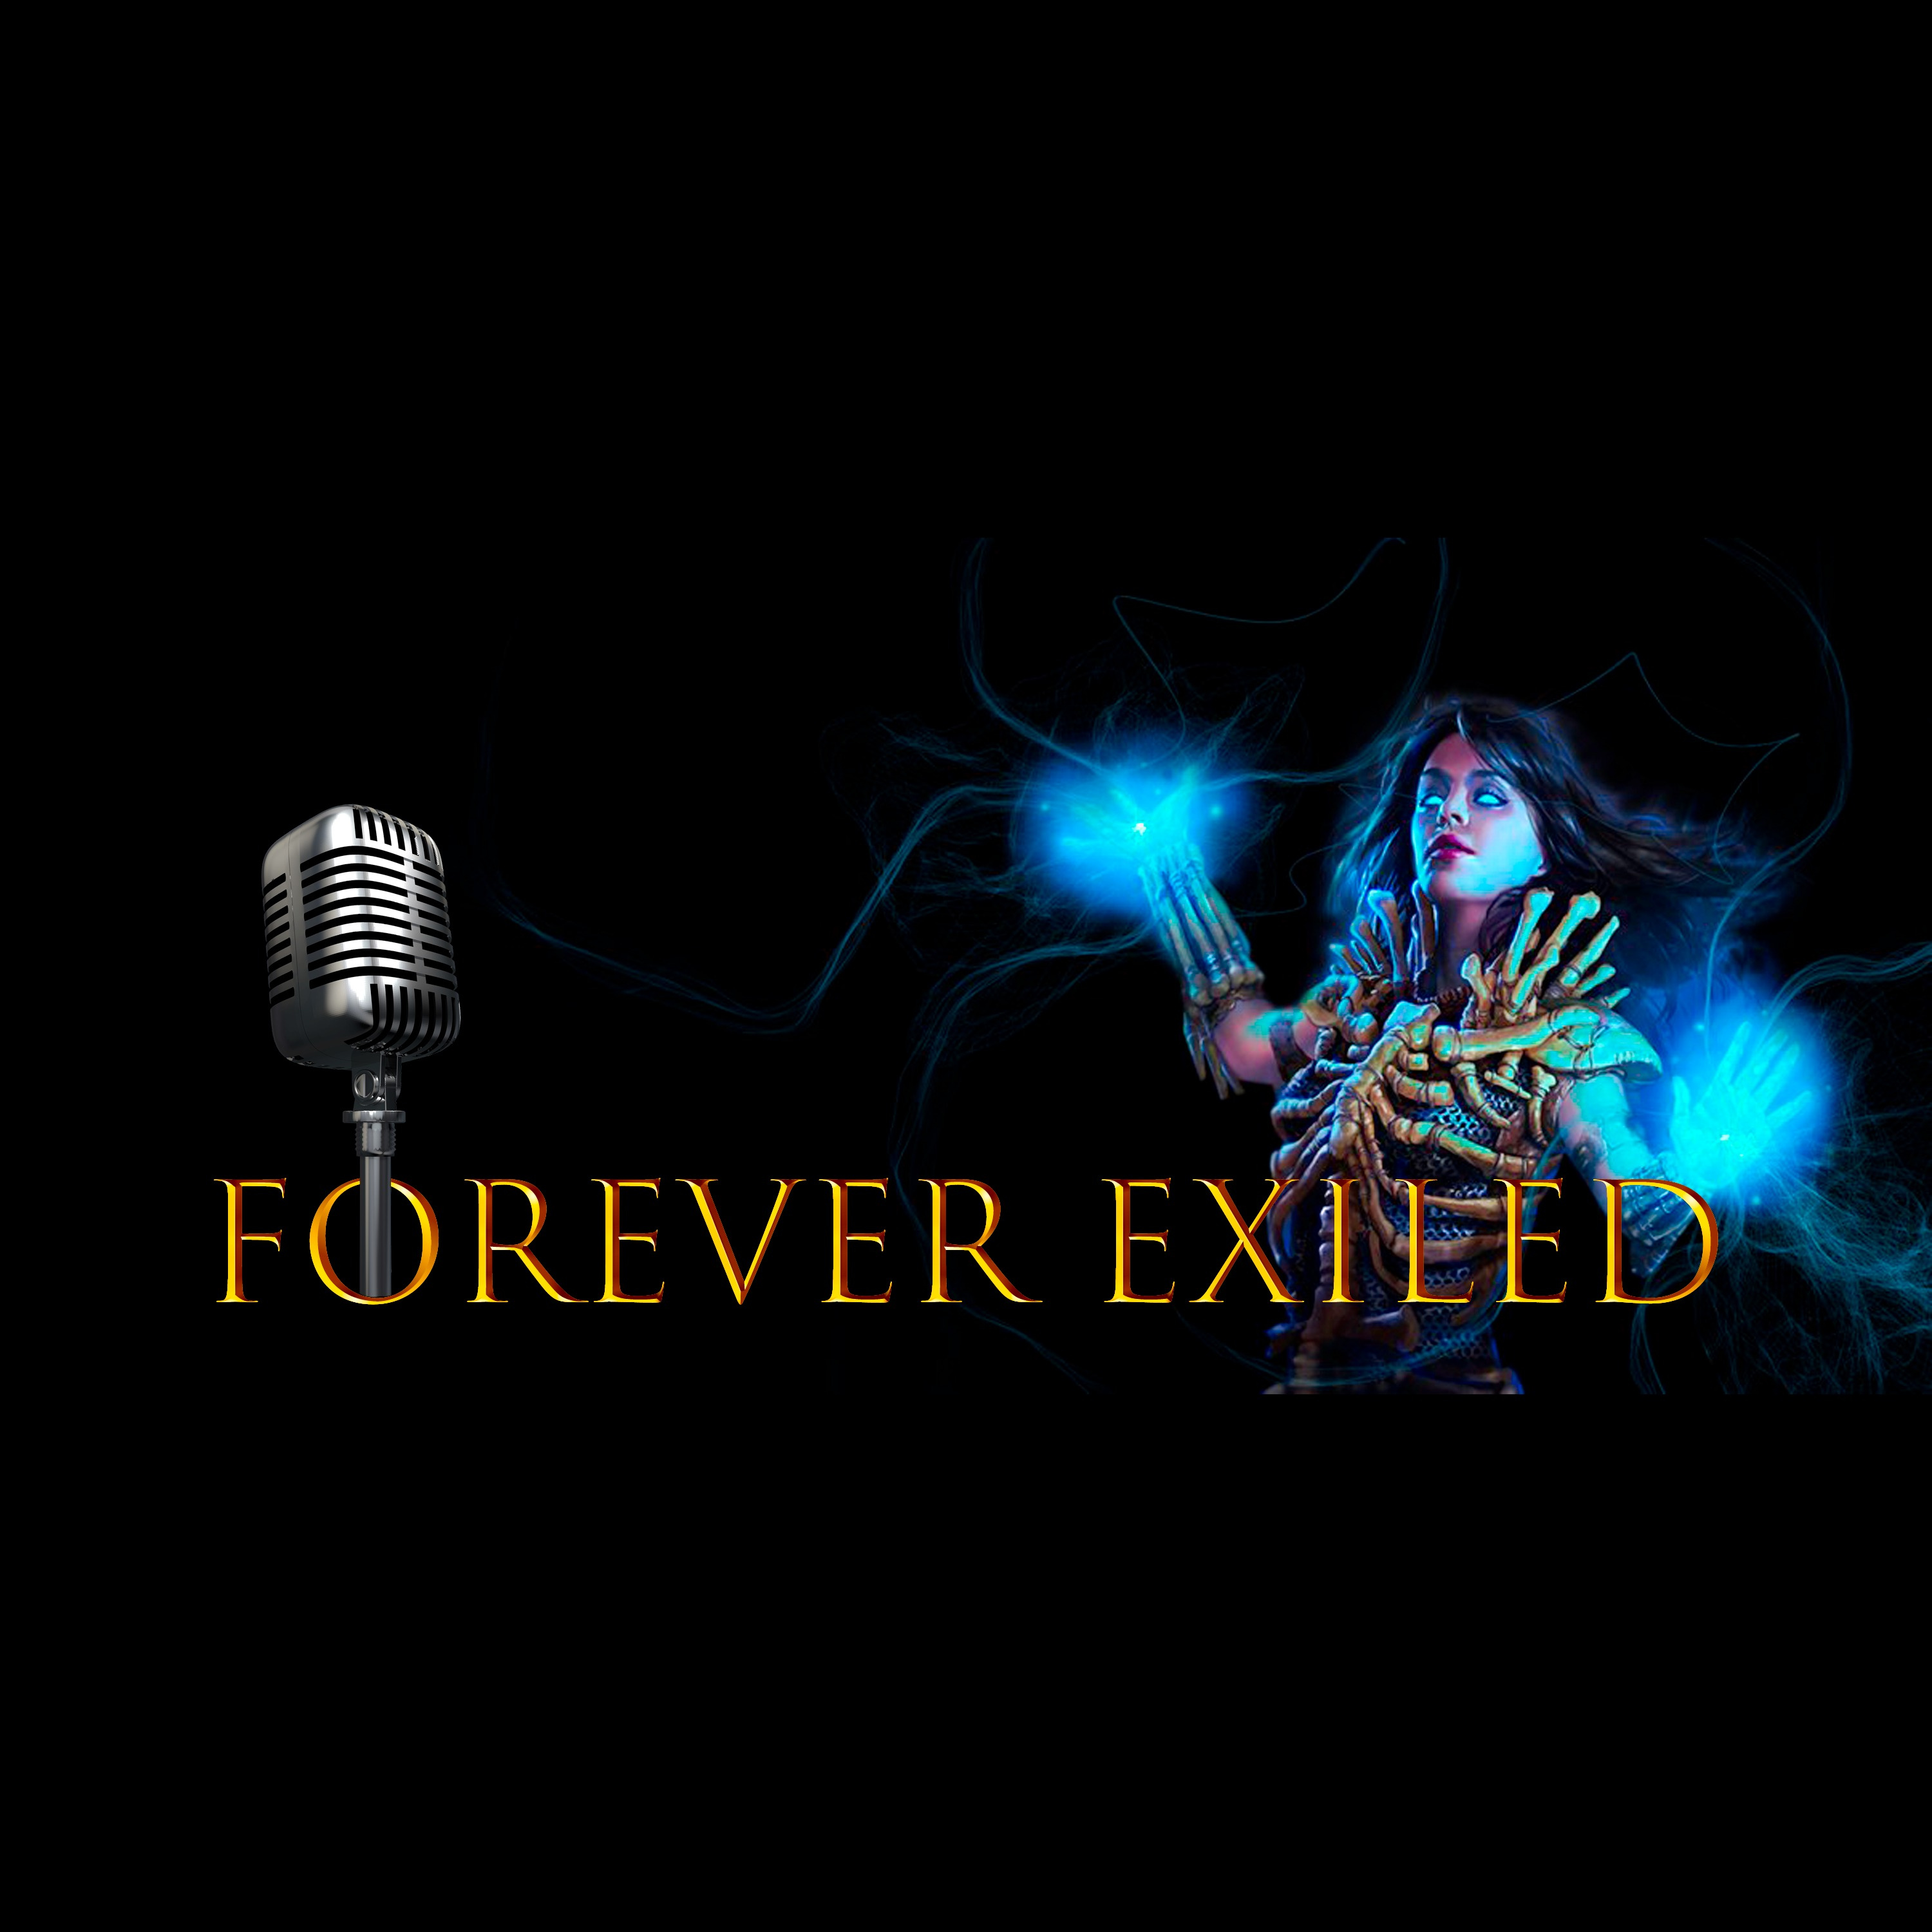 Forever Exiled - A New League Starts 3.9